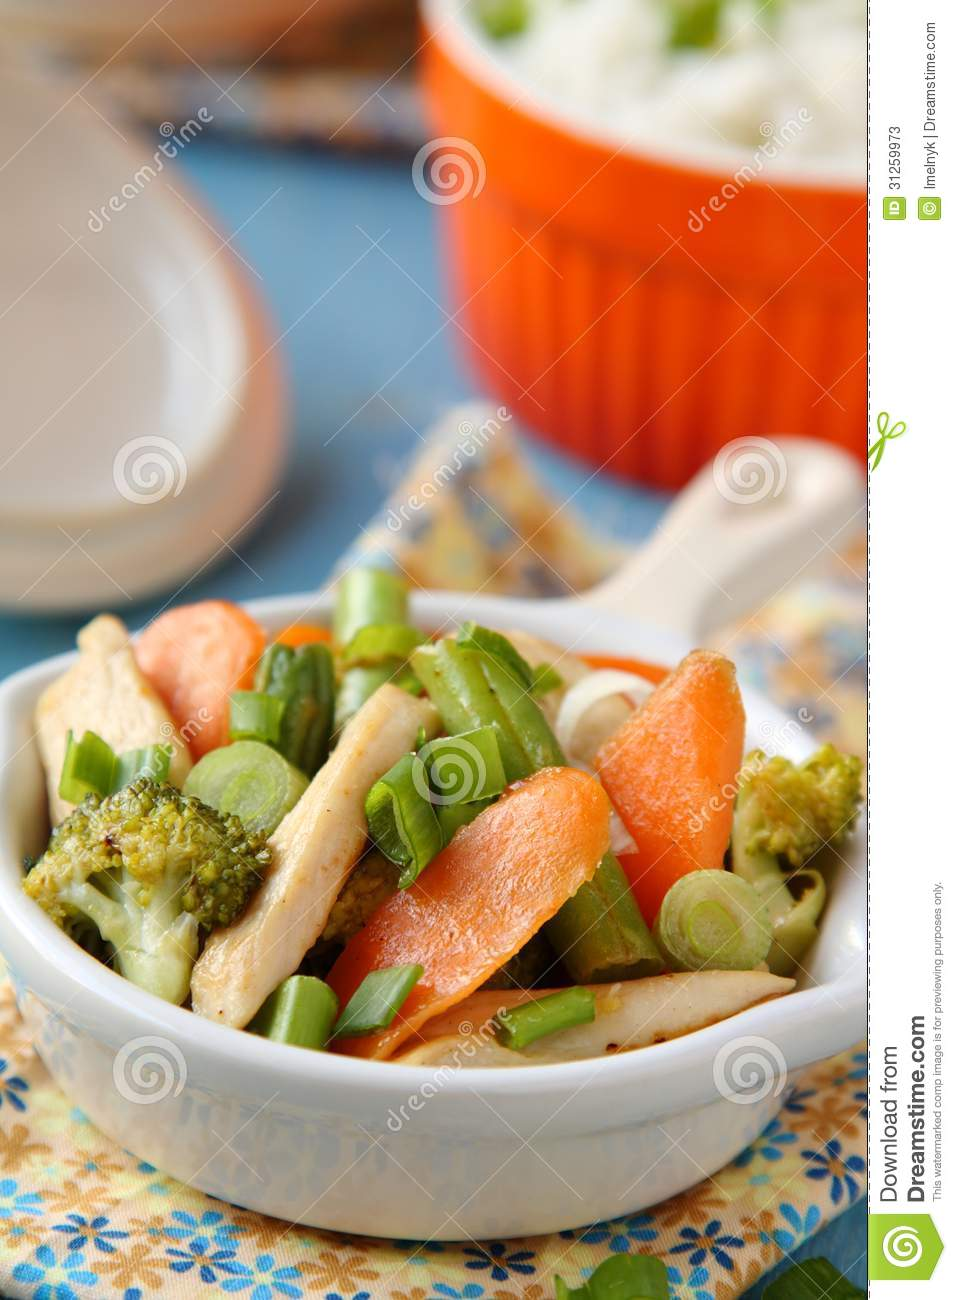 Chicken stir fry with vegetables (carrots, onions, broccoli, green ...